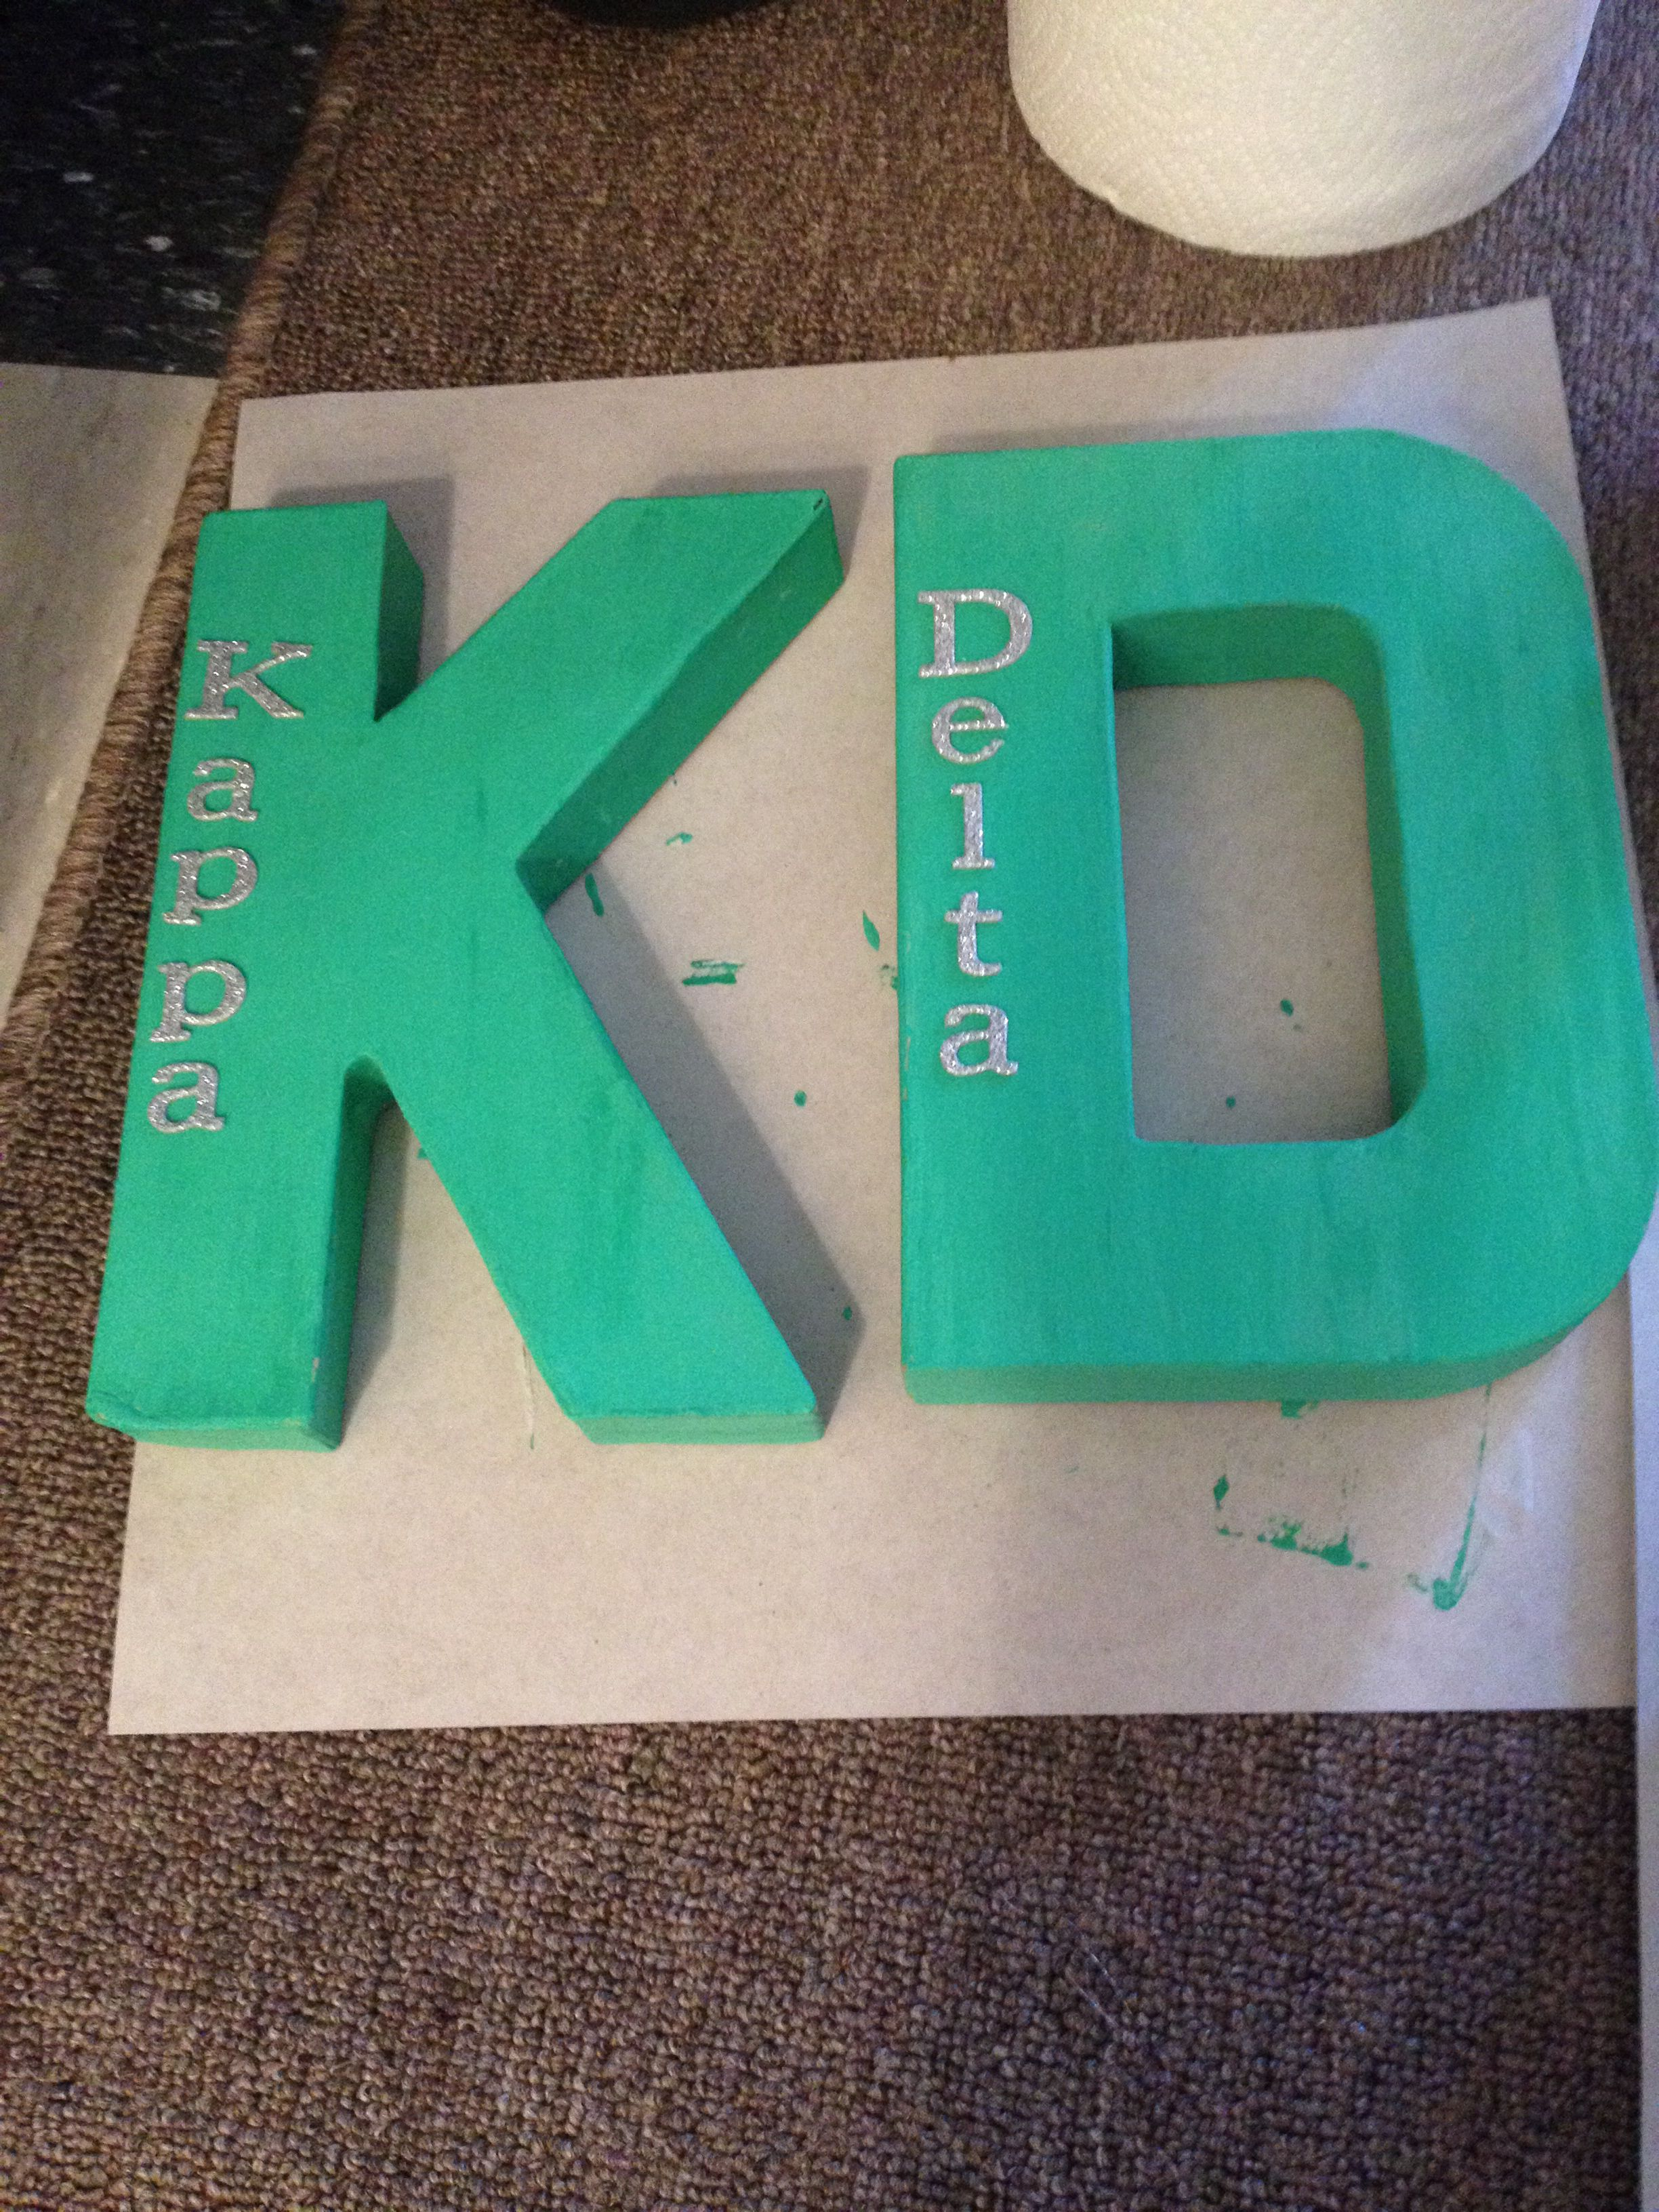 KD letters (With images) Gaming logos, Lettering, Kappa